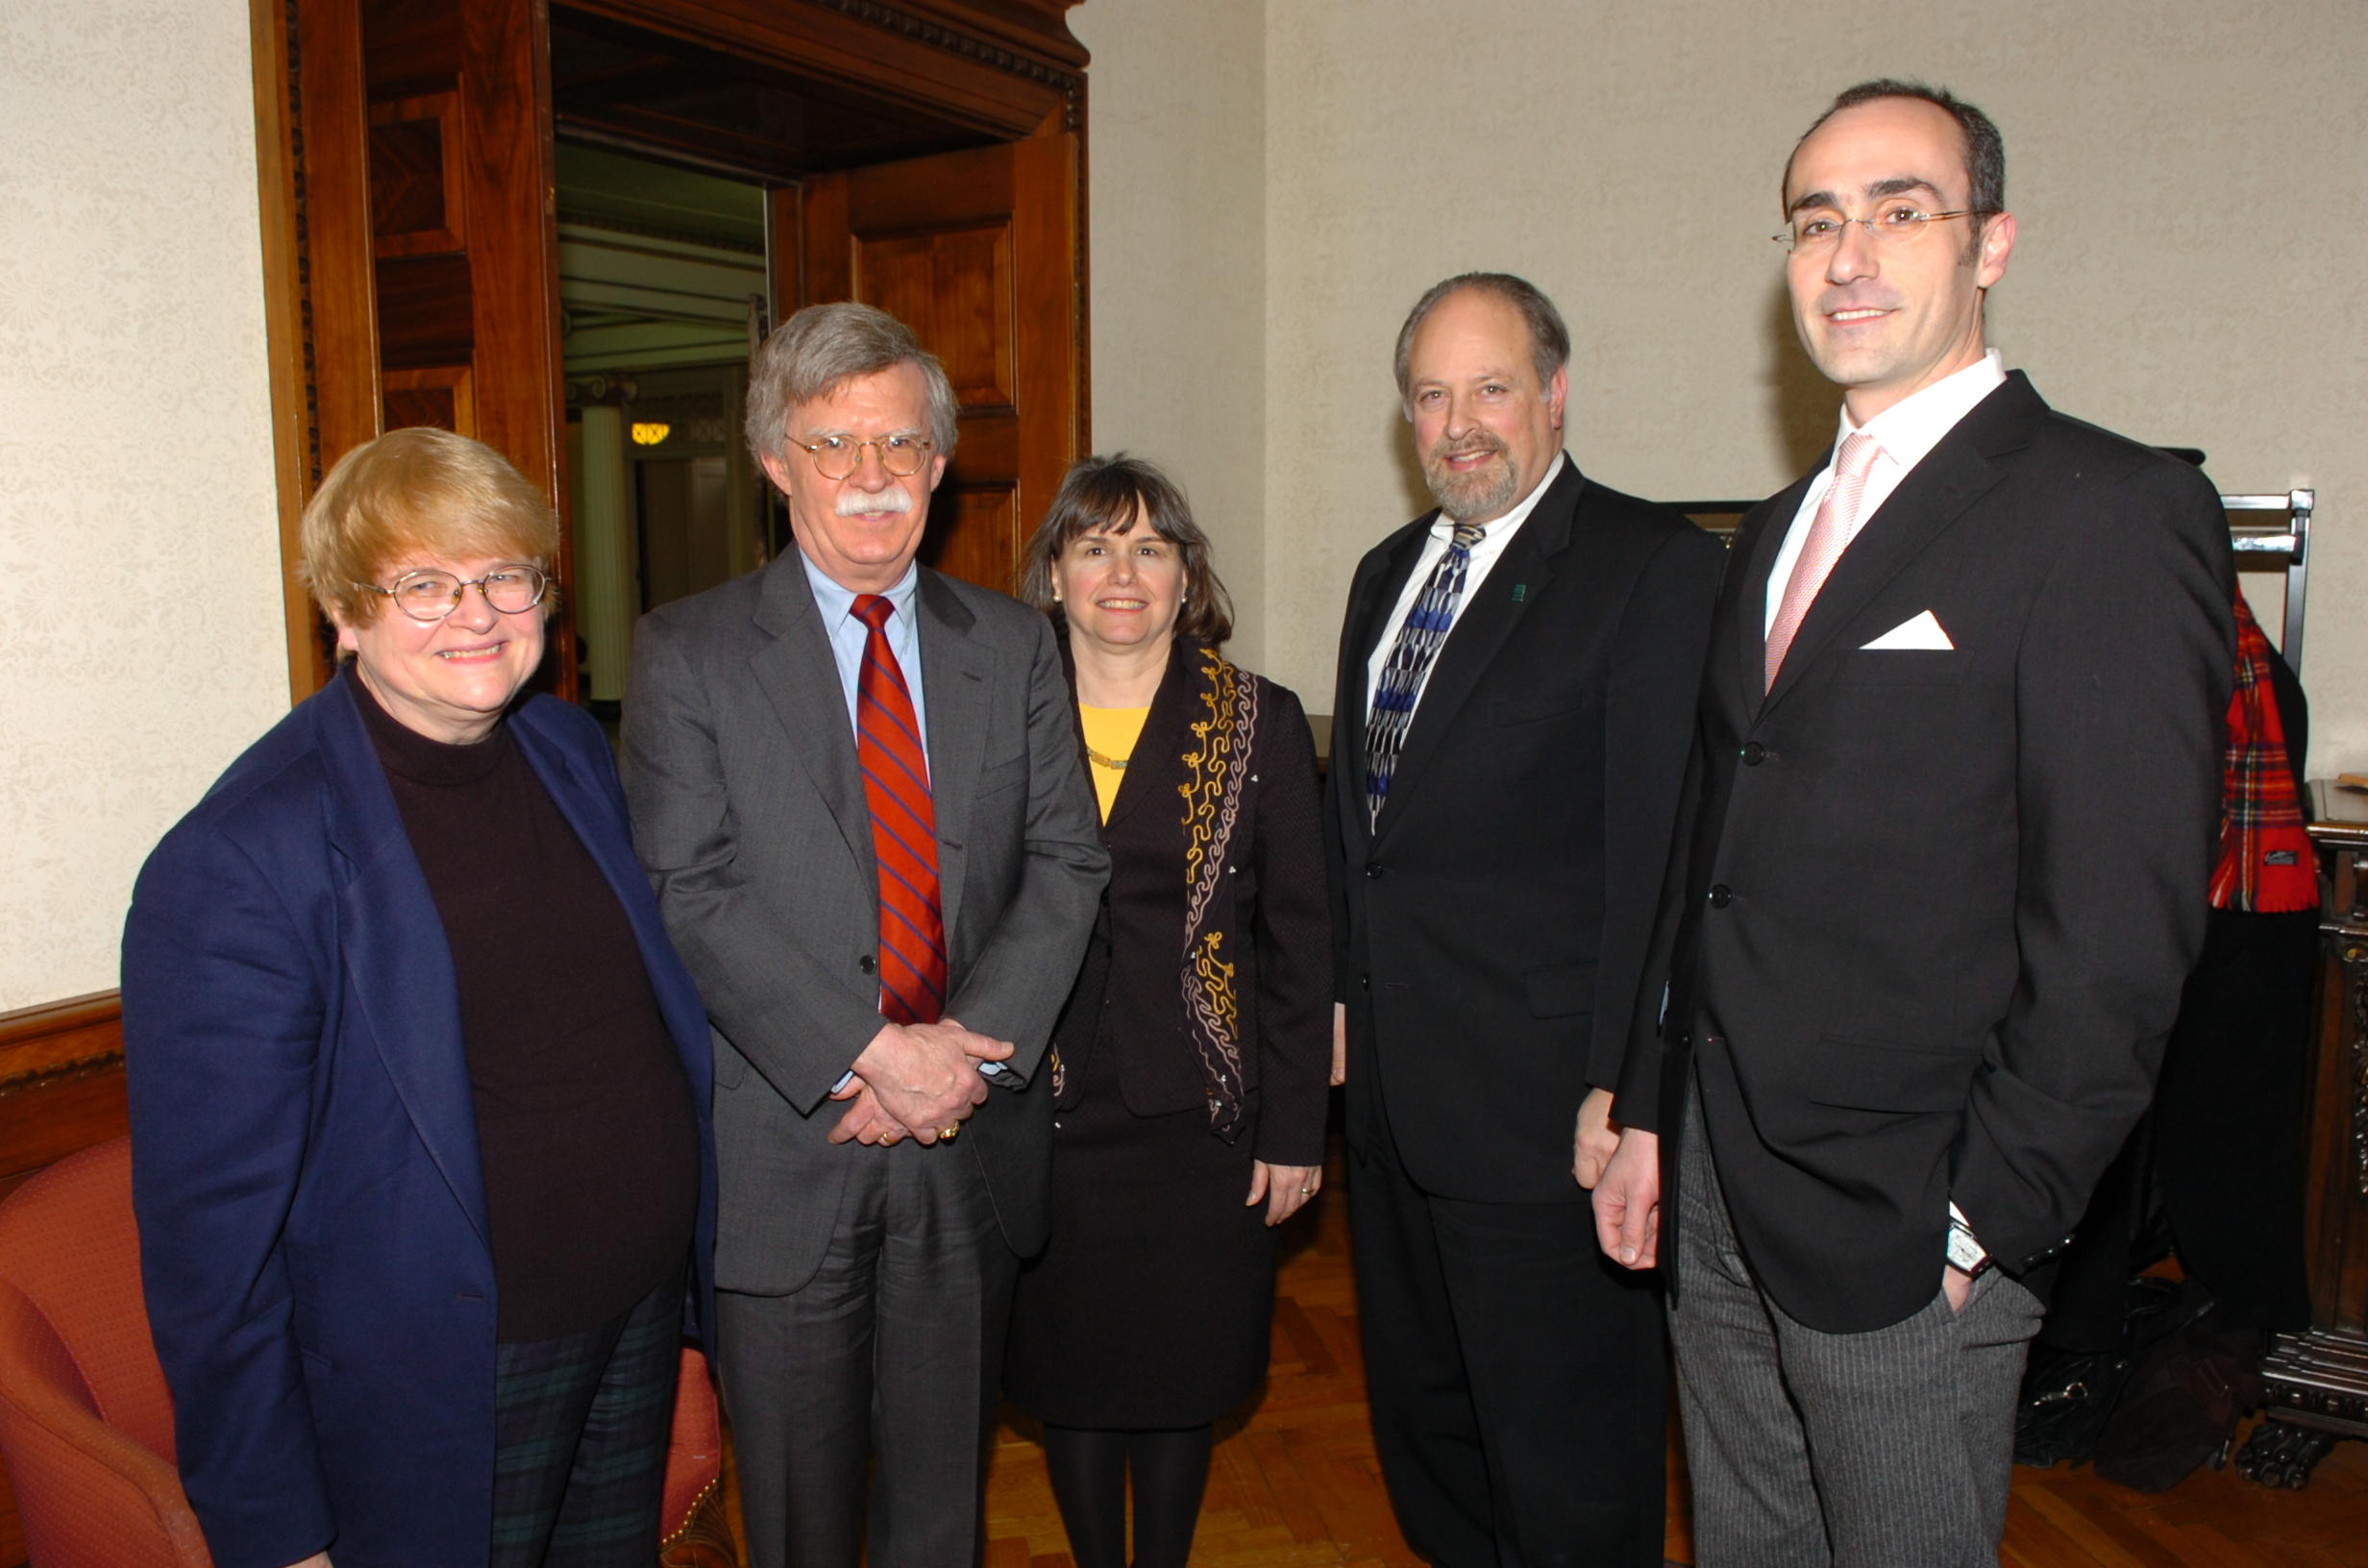 Ambassador John Bolton speaking at the Maxwell School pictured here with Professor Maragret Hermann, Dean Mitch Wallerstein, and Professor Arthur Brooks (2007)